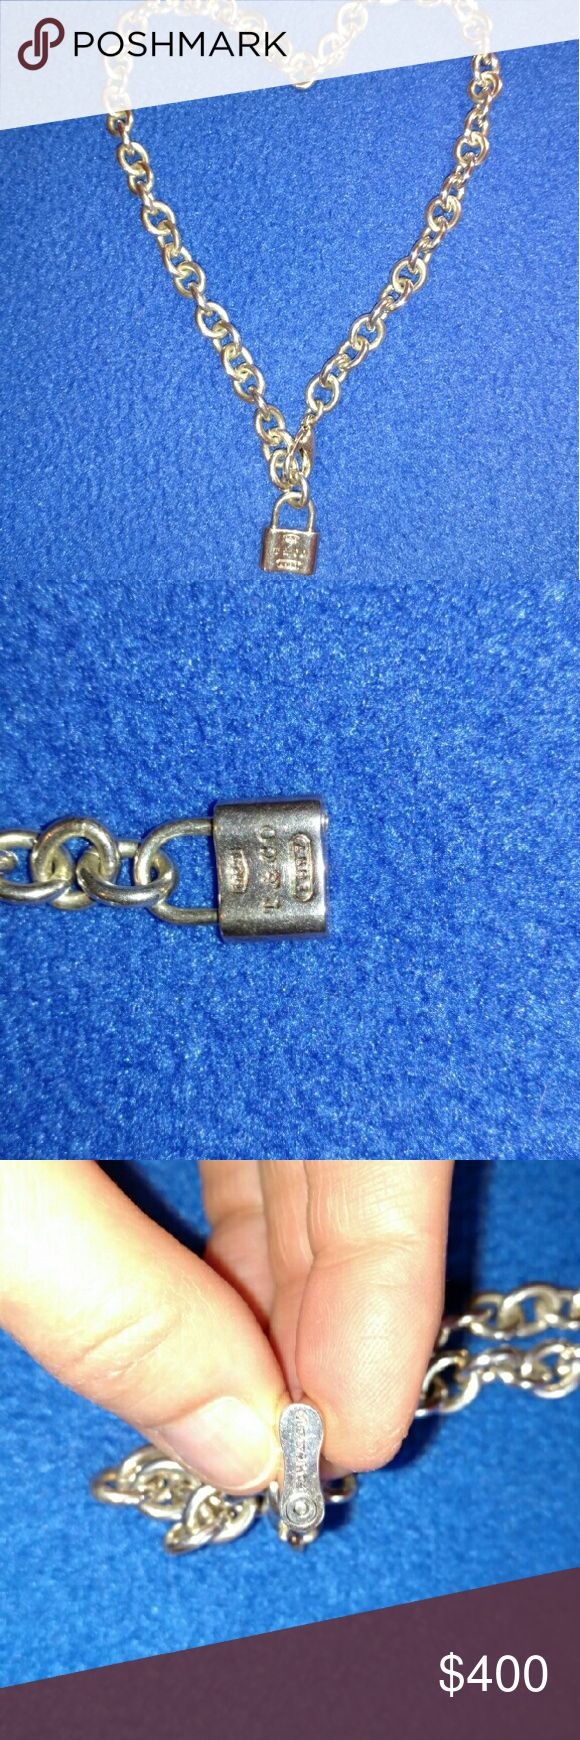 """Tiffany & Co. Chain Link padlock necklace 16"""" Like new-worn once. EUC Tiffany & Co. Jewelry Necklaces"""